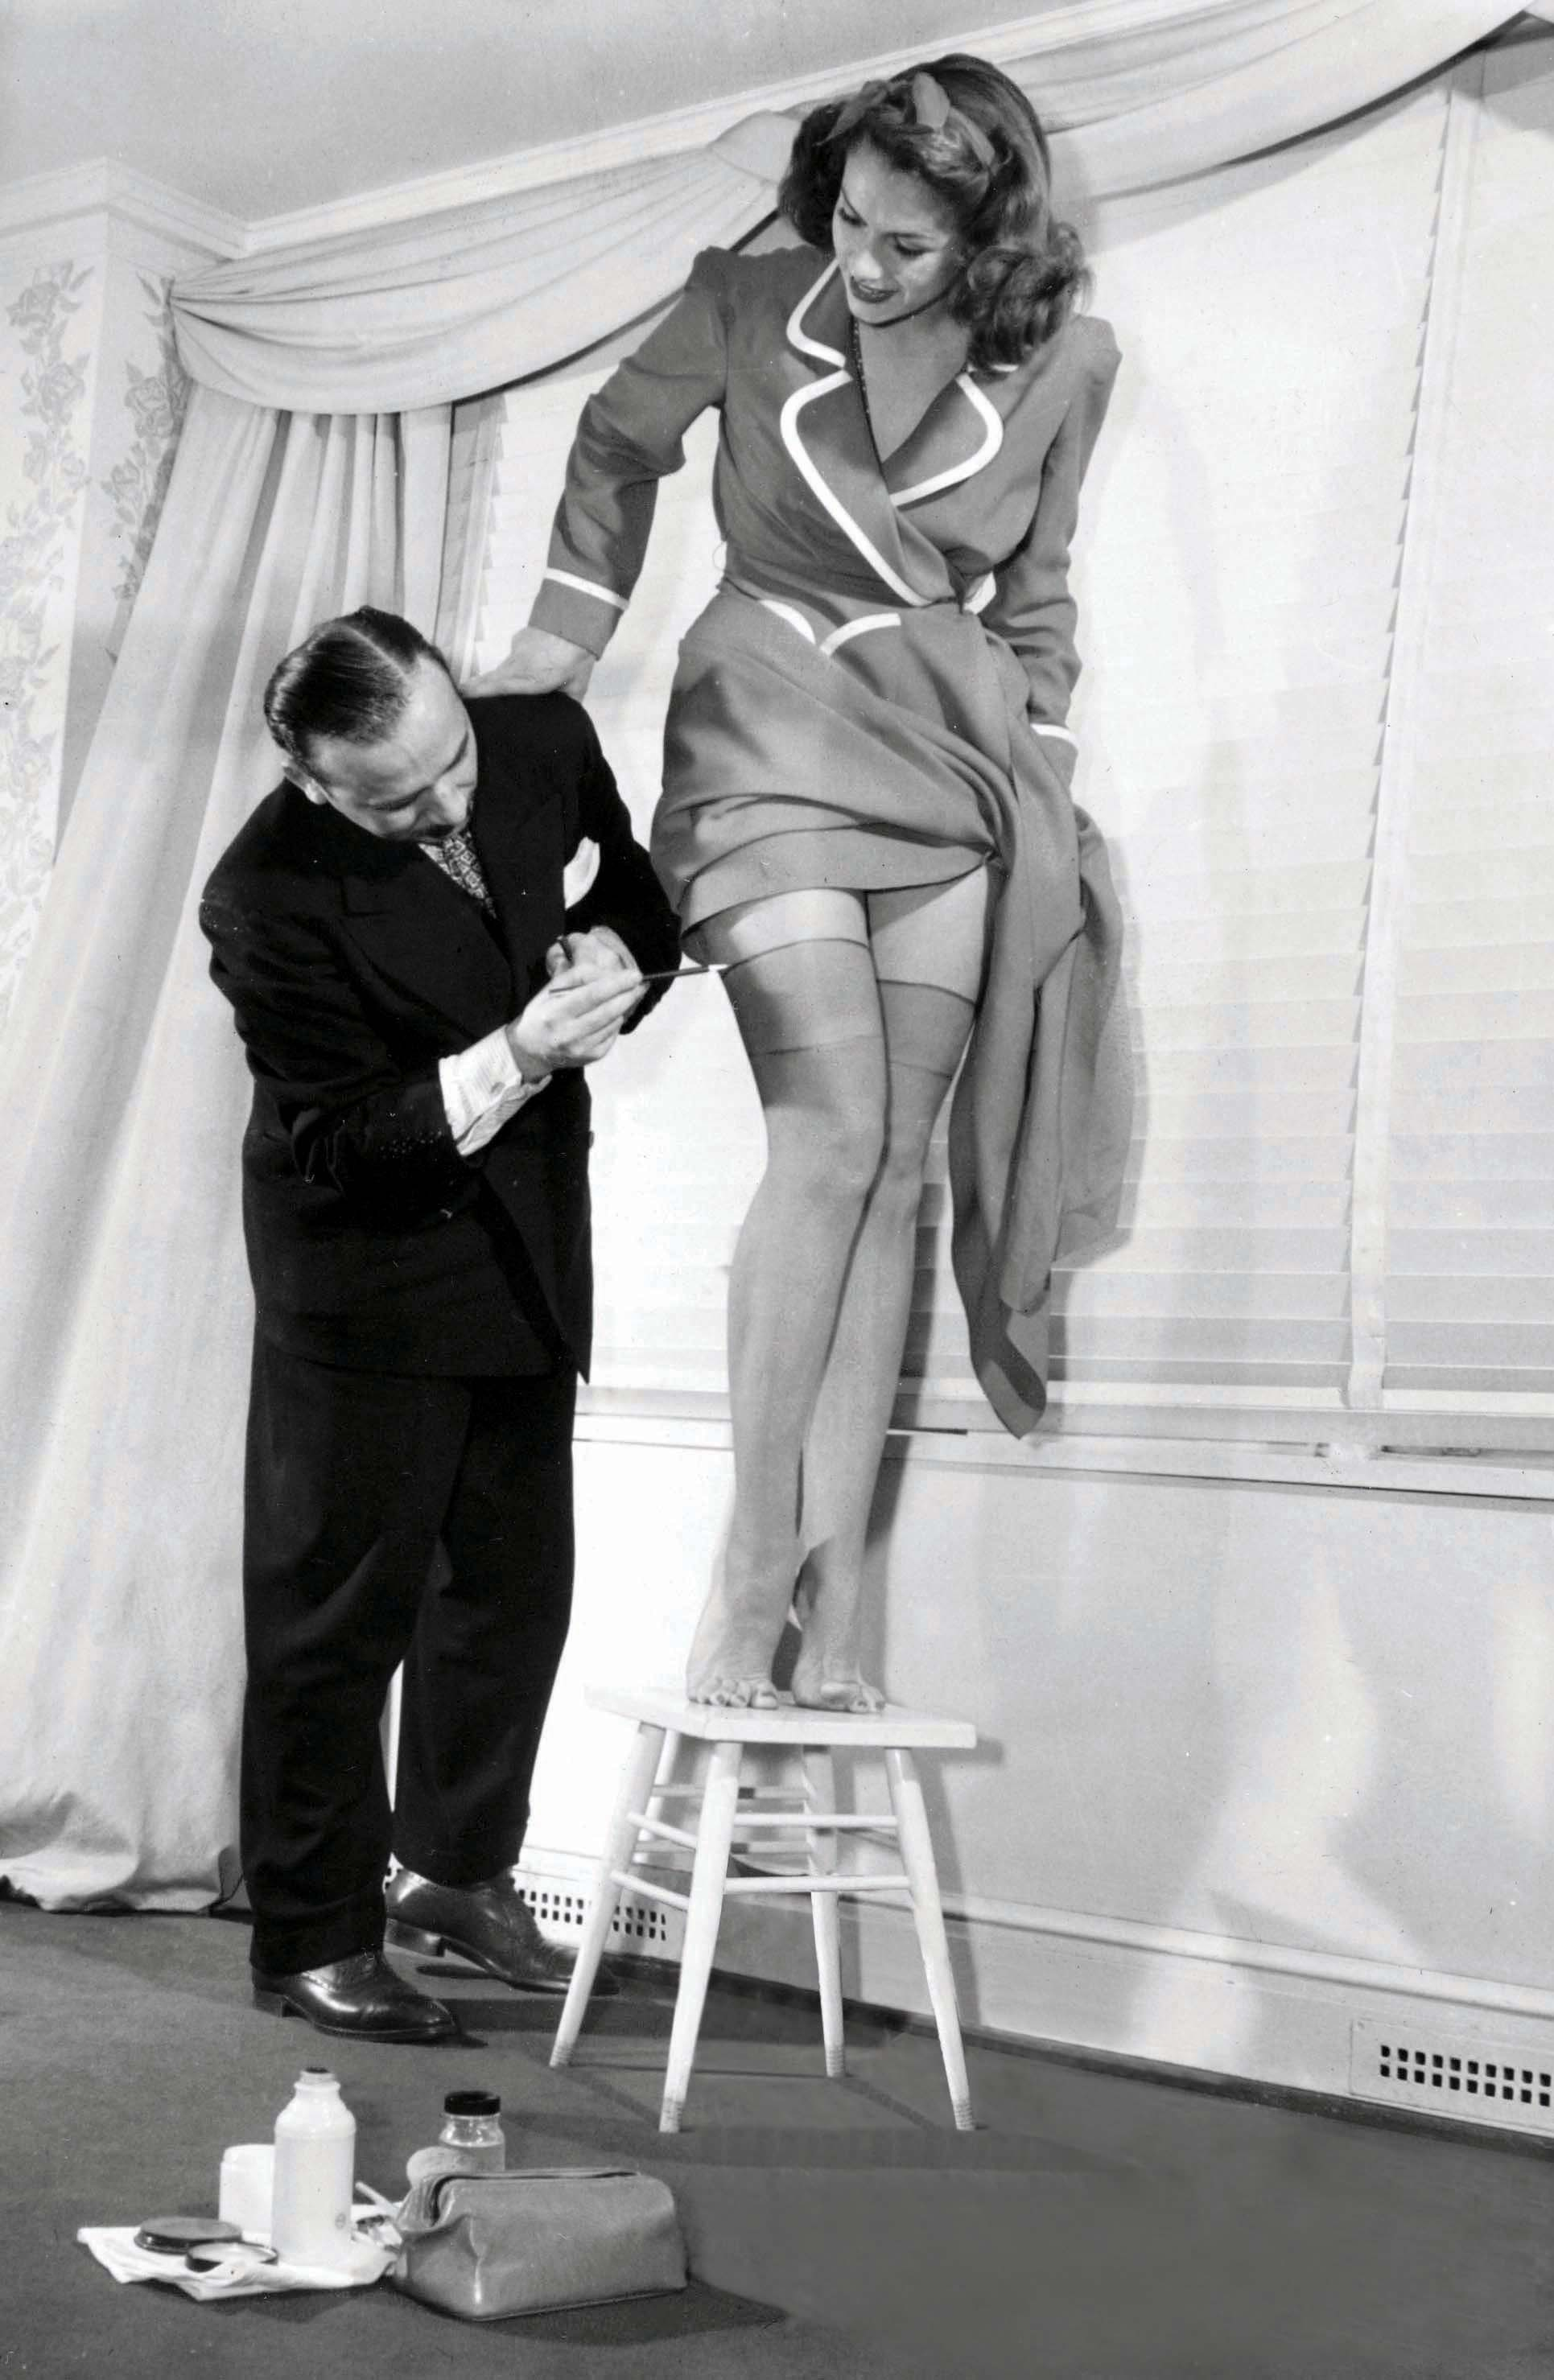 During the Second World War, there was a nylon shortage; here, a woman stands on a stool while a man carefully paints on her stockings